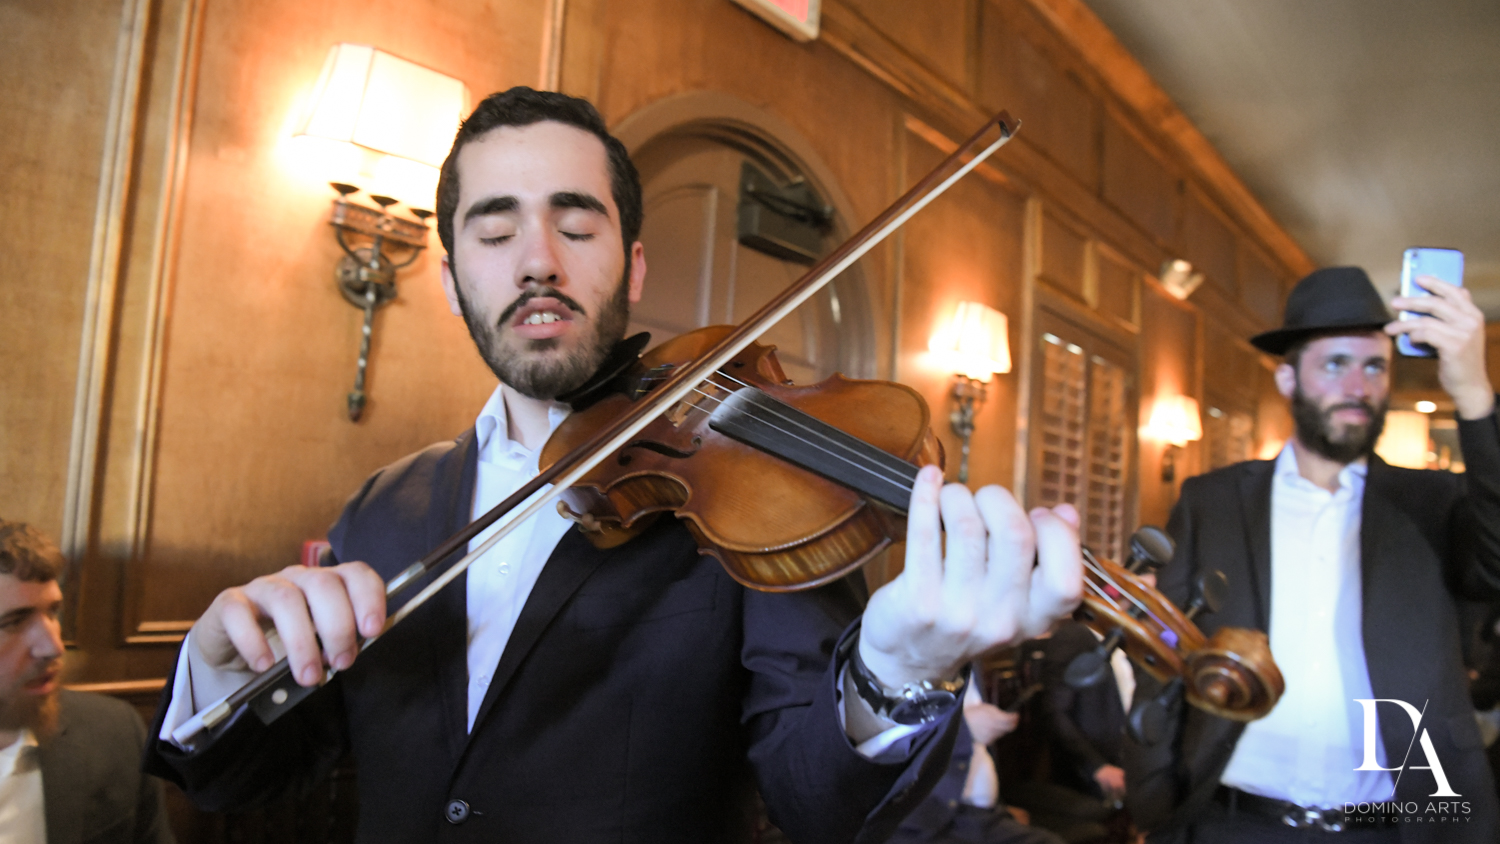 live violinist at Hasidic Jewish Wedding at The Addison in Boca Raton by Domino Arts Photography